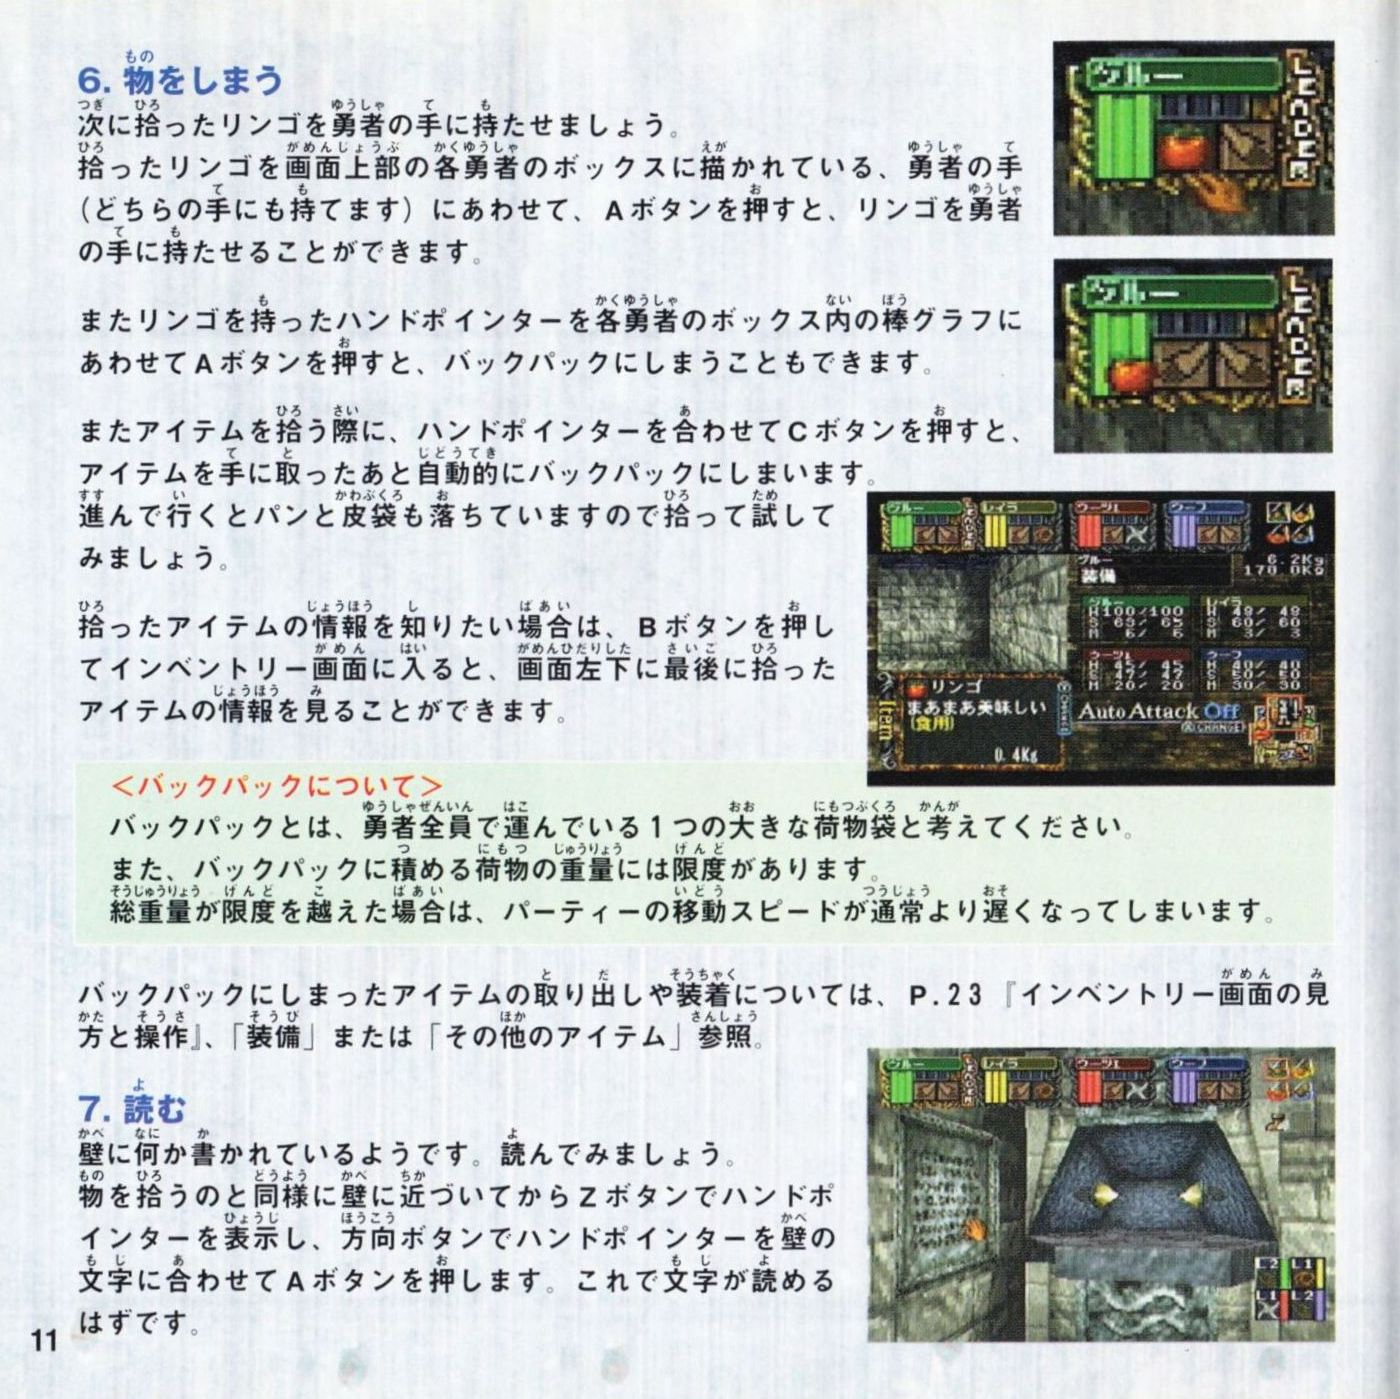 Game - Dungeon Master Nexus - JP - Sega Saturn - Booklet - Page 012 - Scan